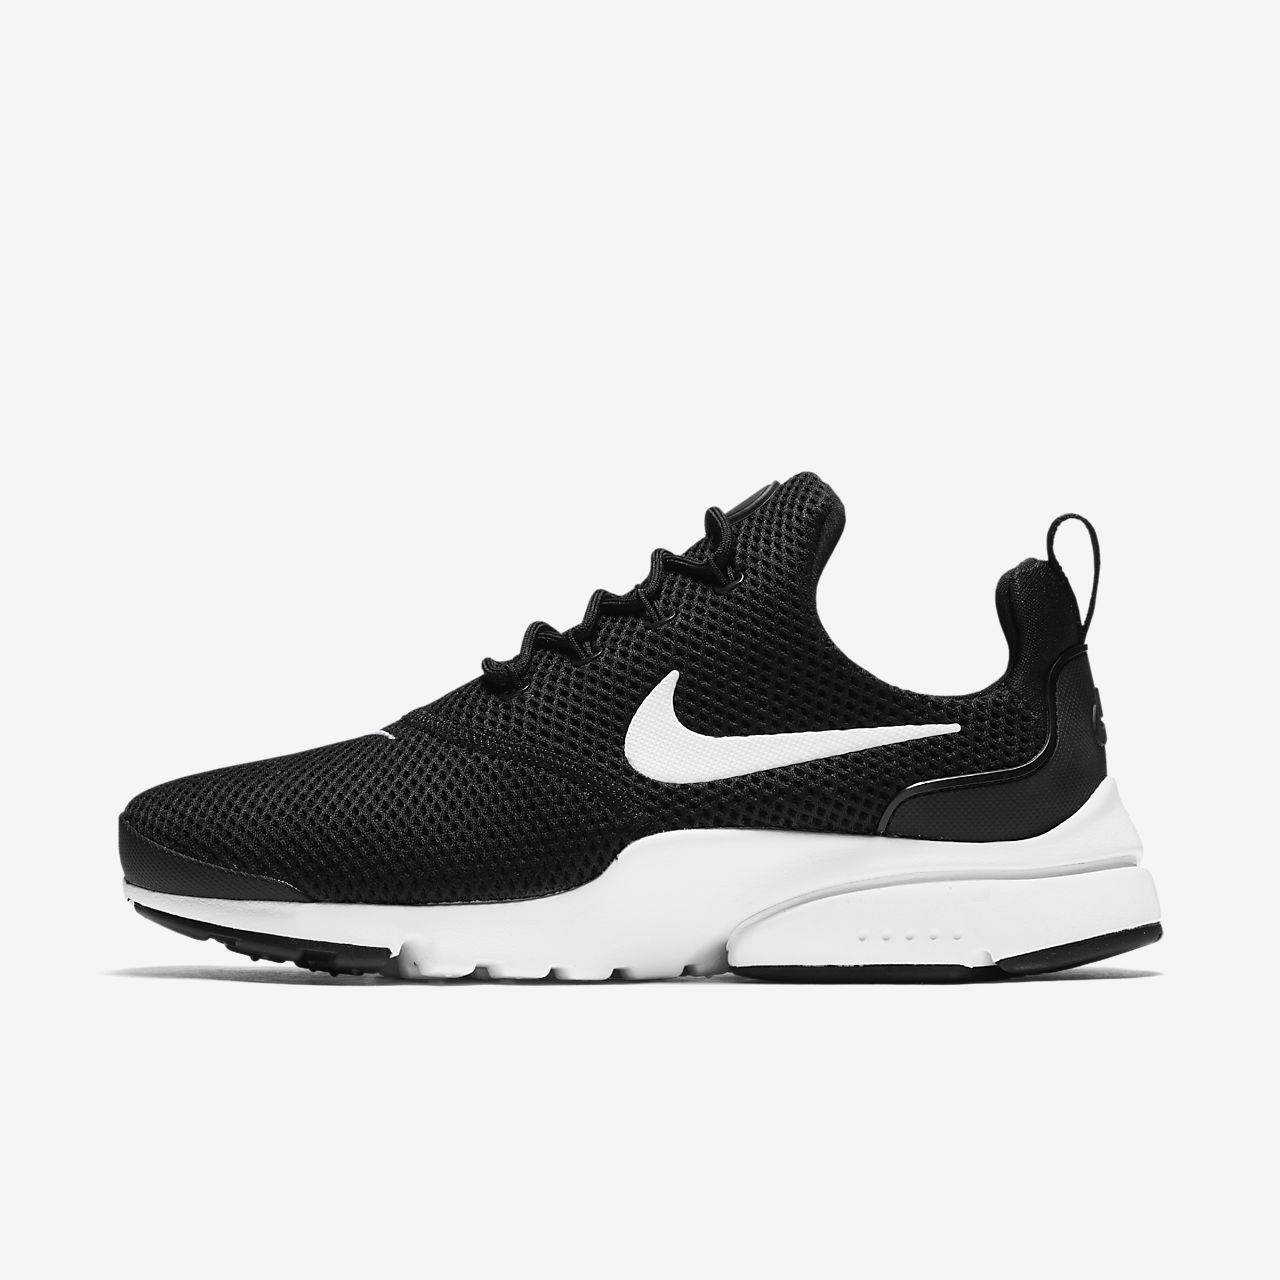 info for 7284e 76547 ... Nike Presto Fly Womens Shoe